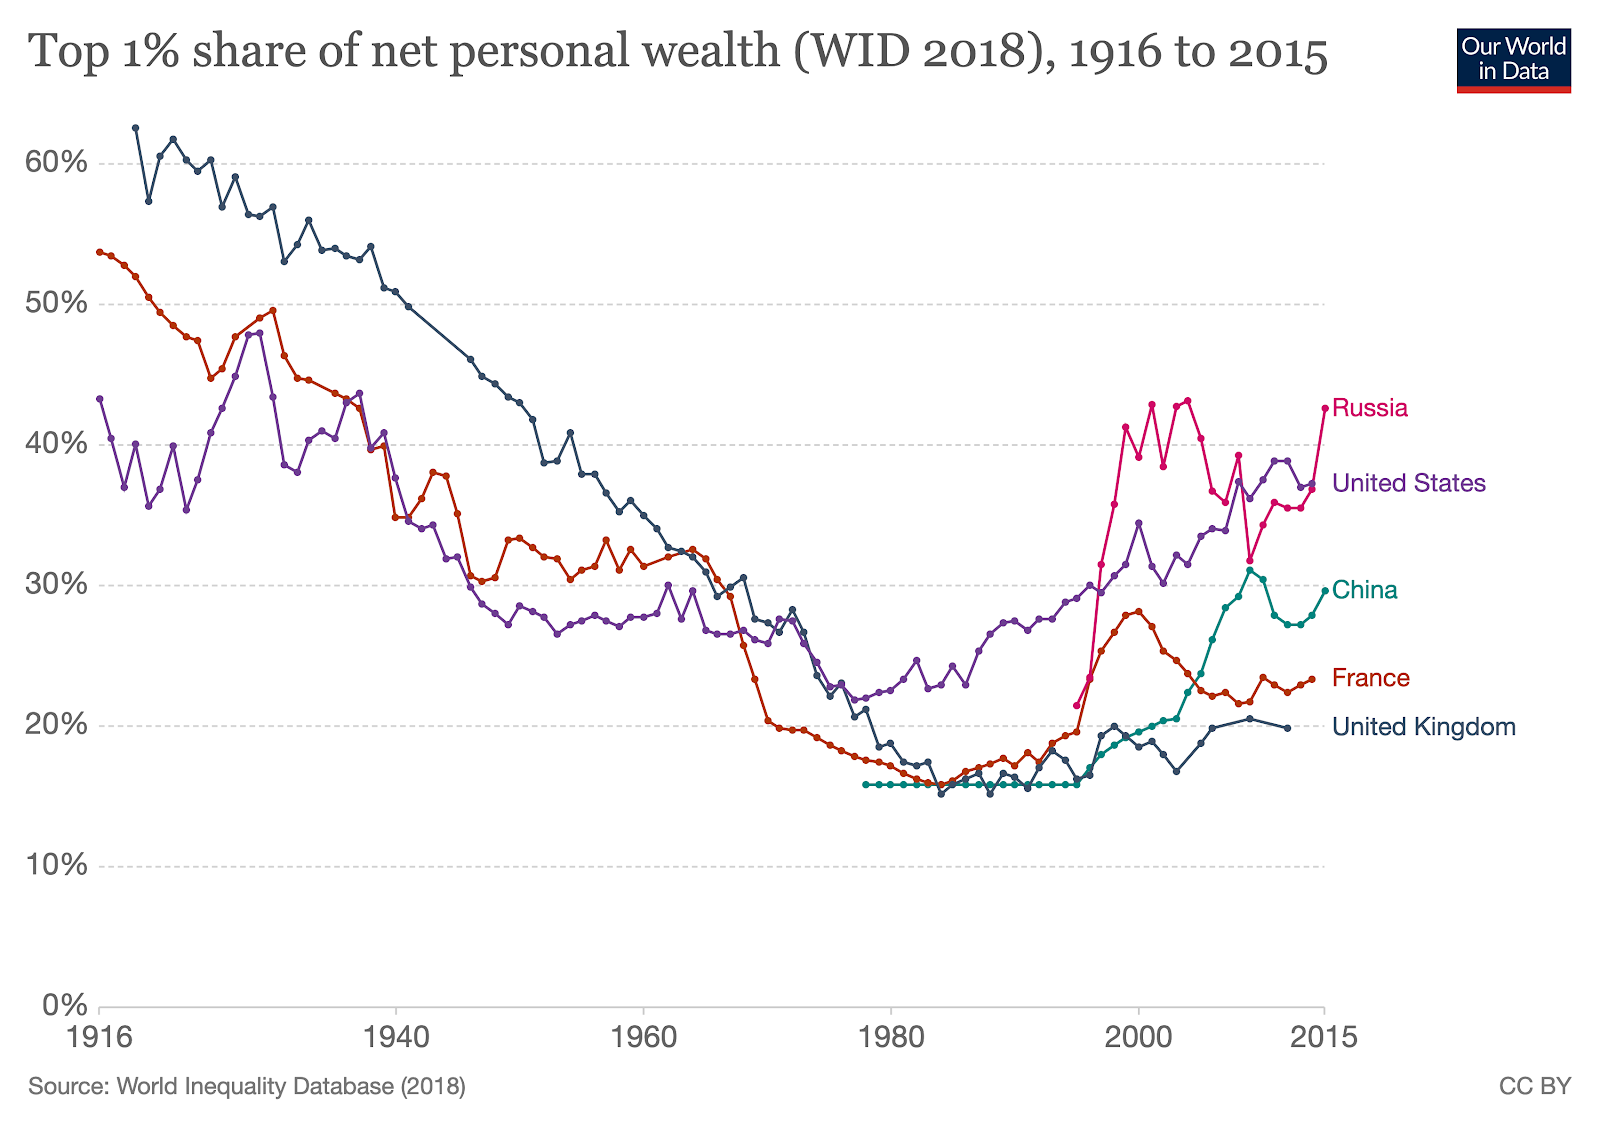 The top 1% really got wealthier